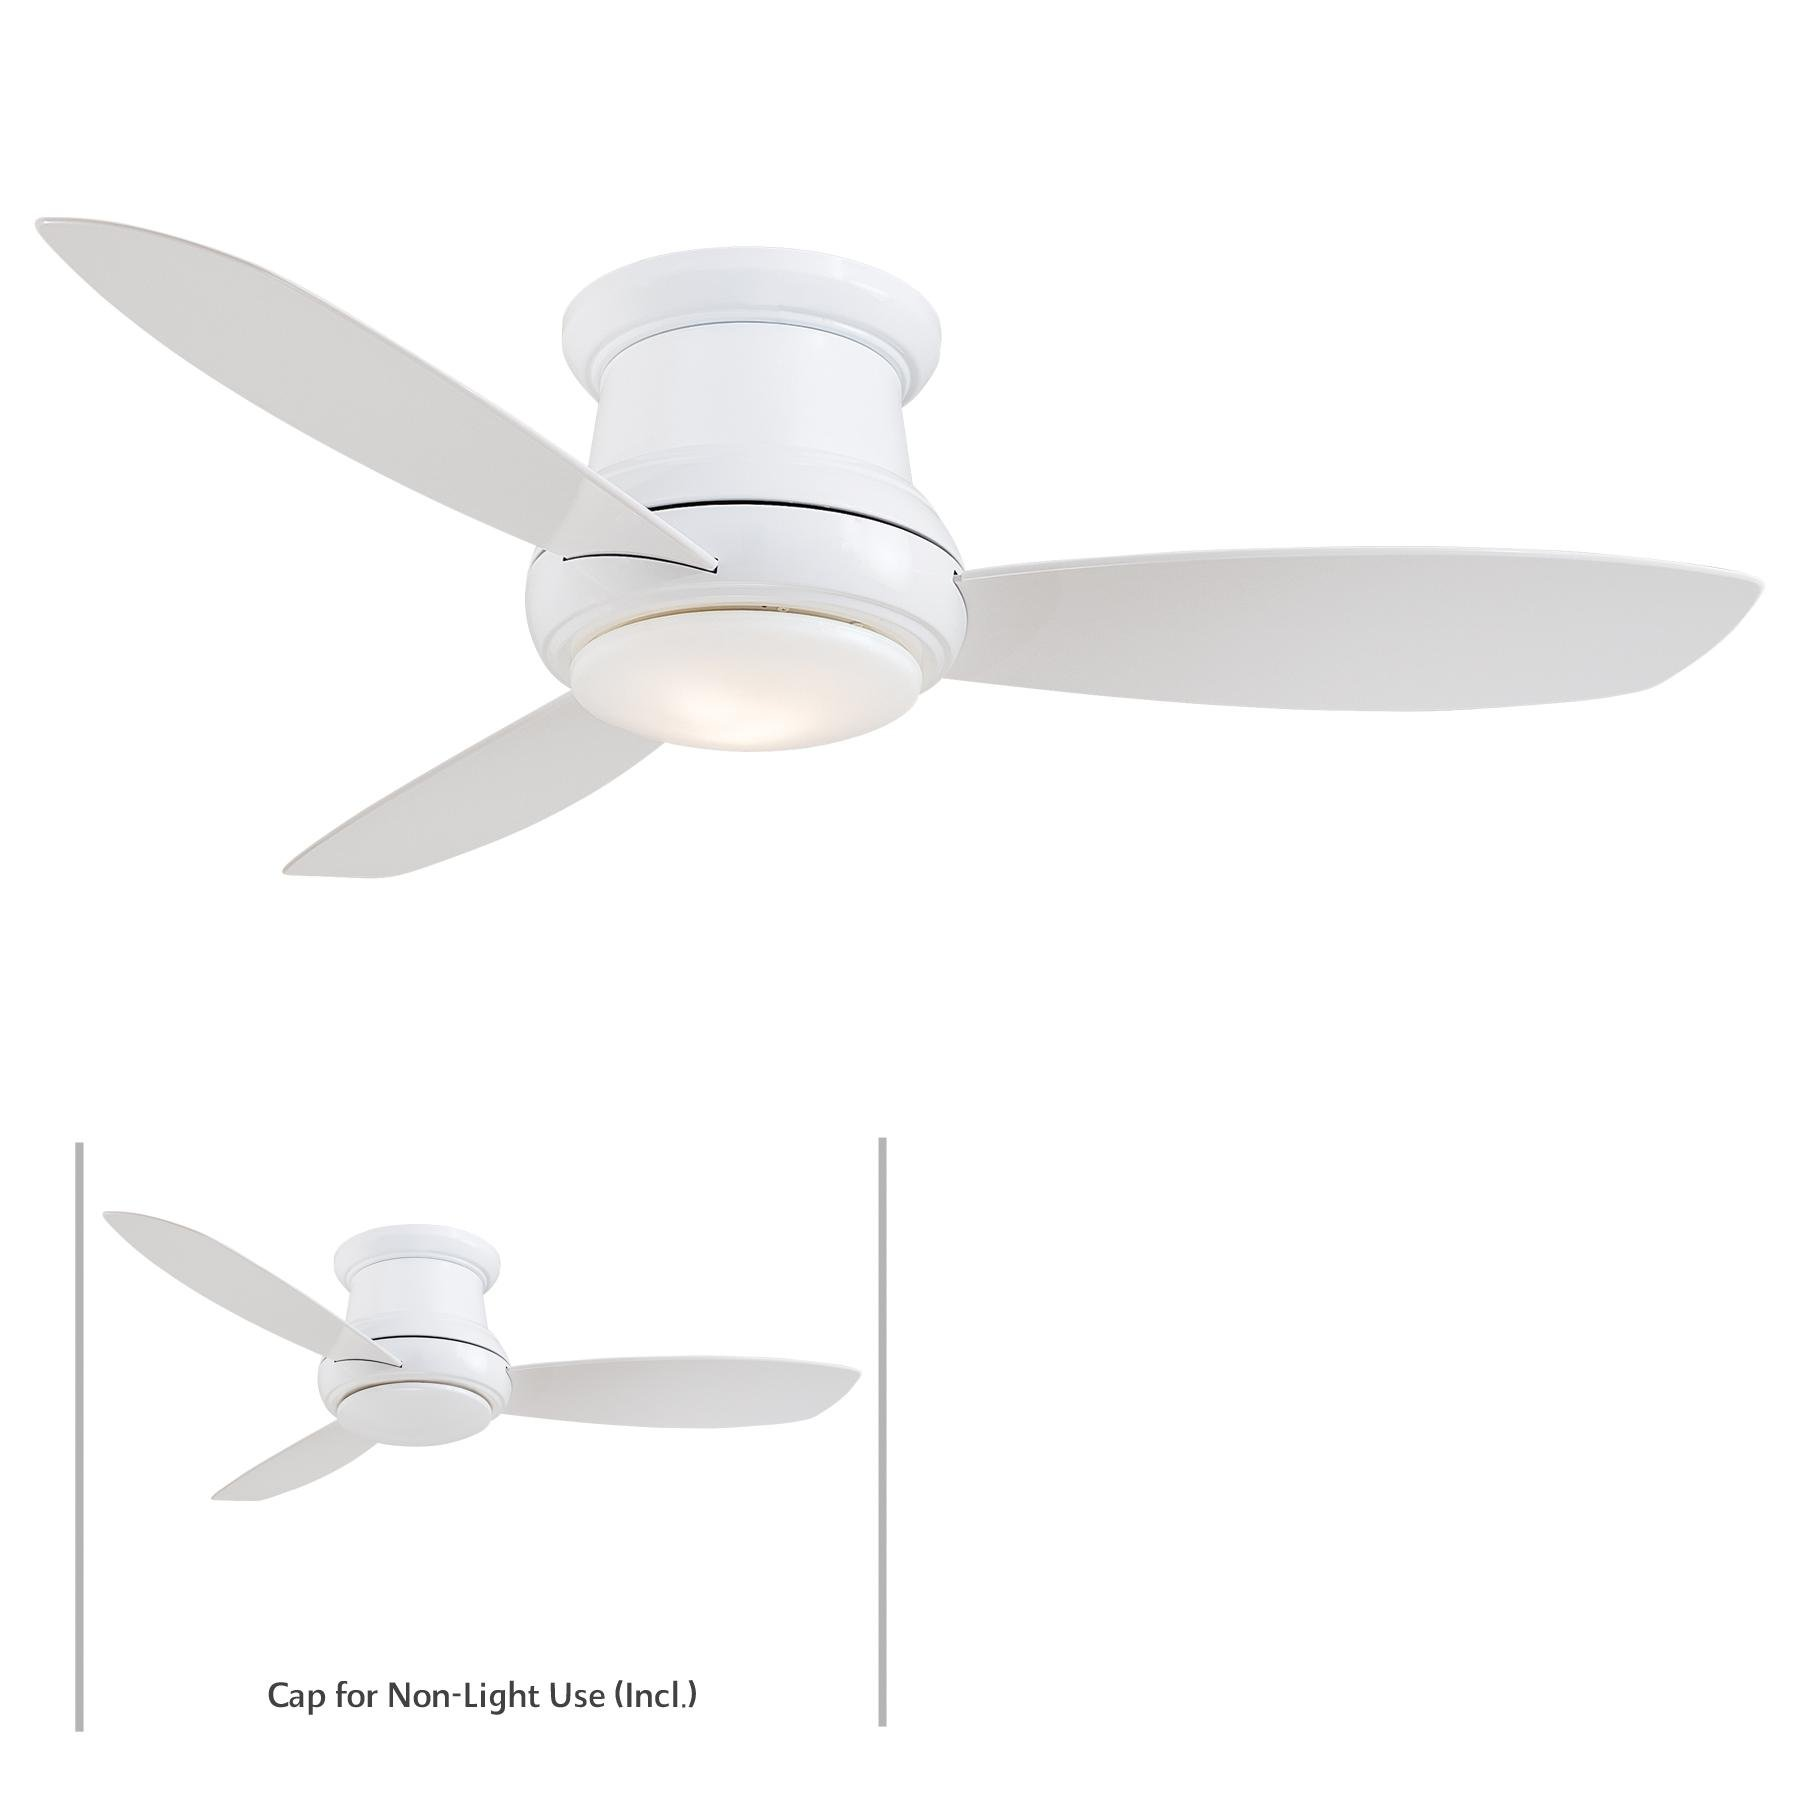 Minka-Aire F519L-WH, Concept II LED White Flush Mount 52'' Ceiling Fan with Light & Remote Control by Minka-Aire